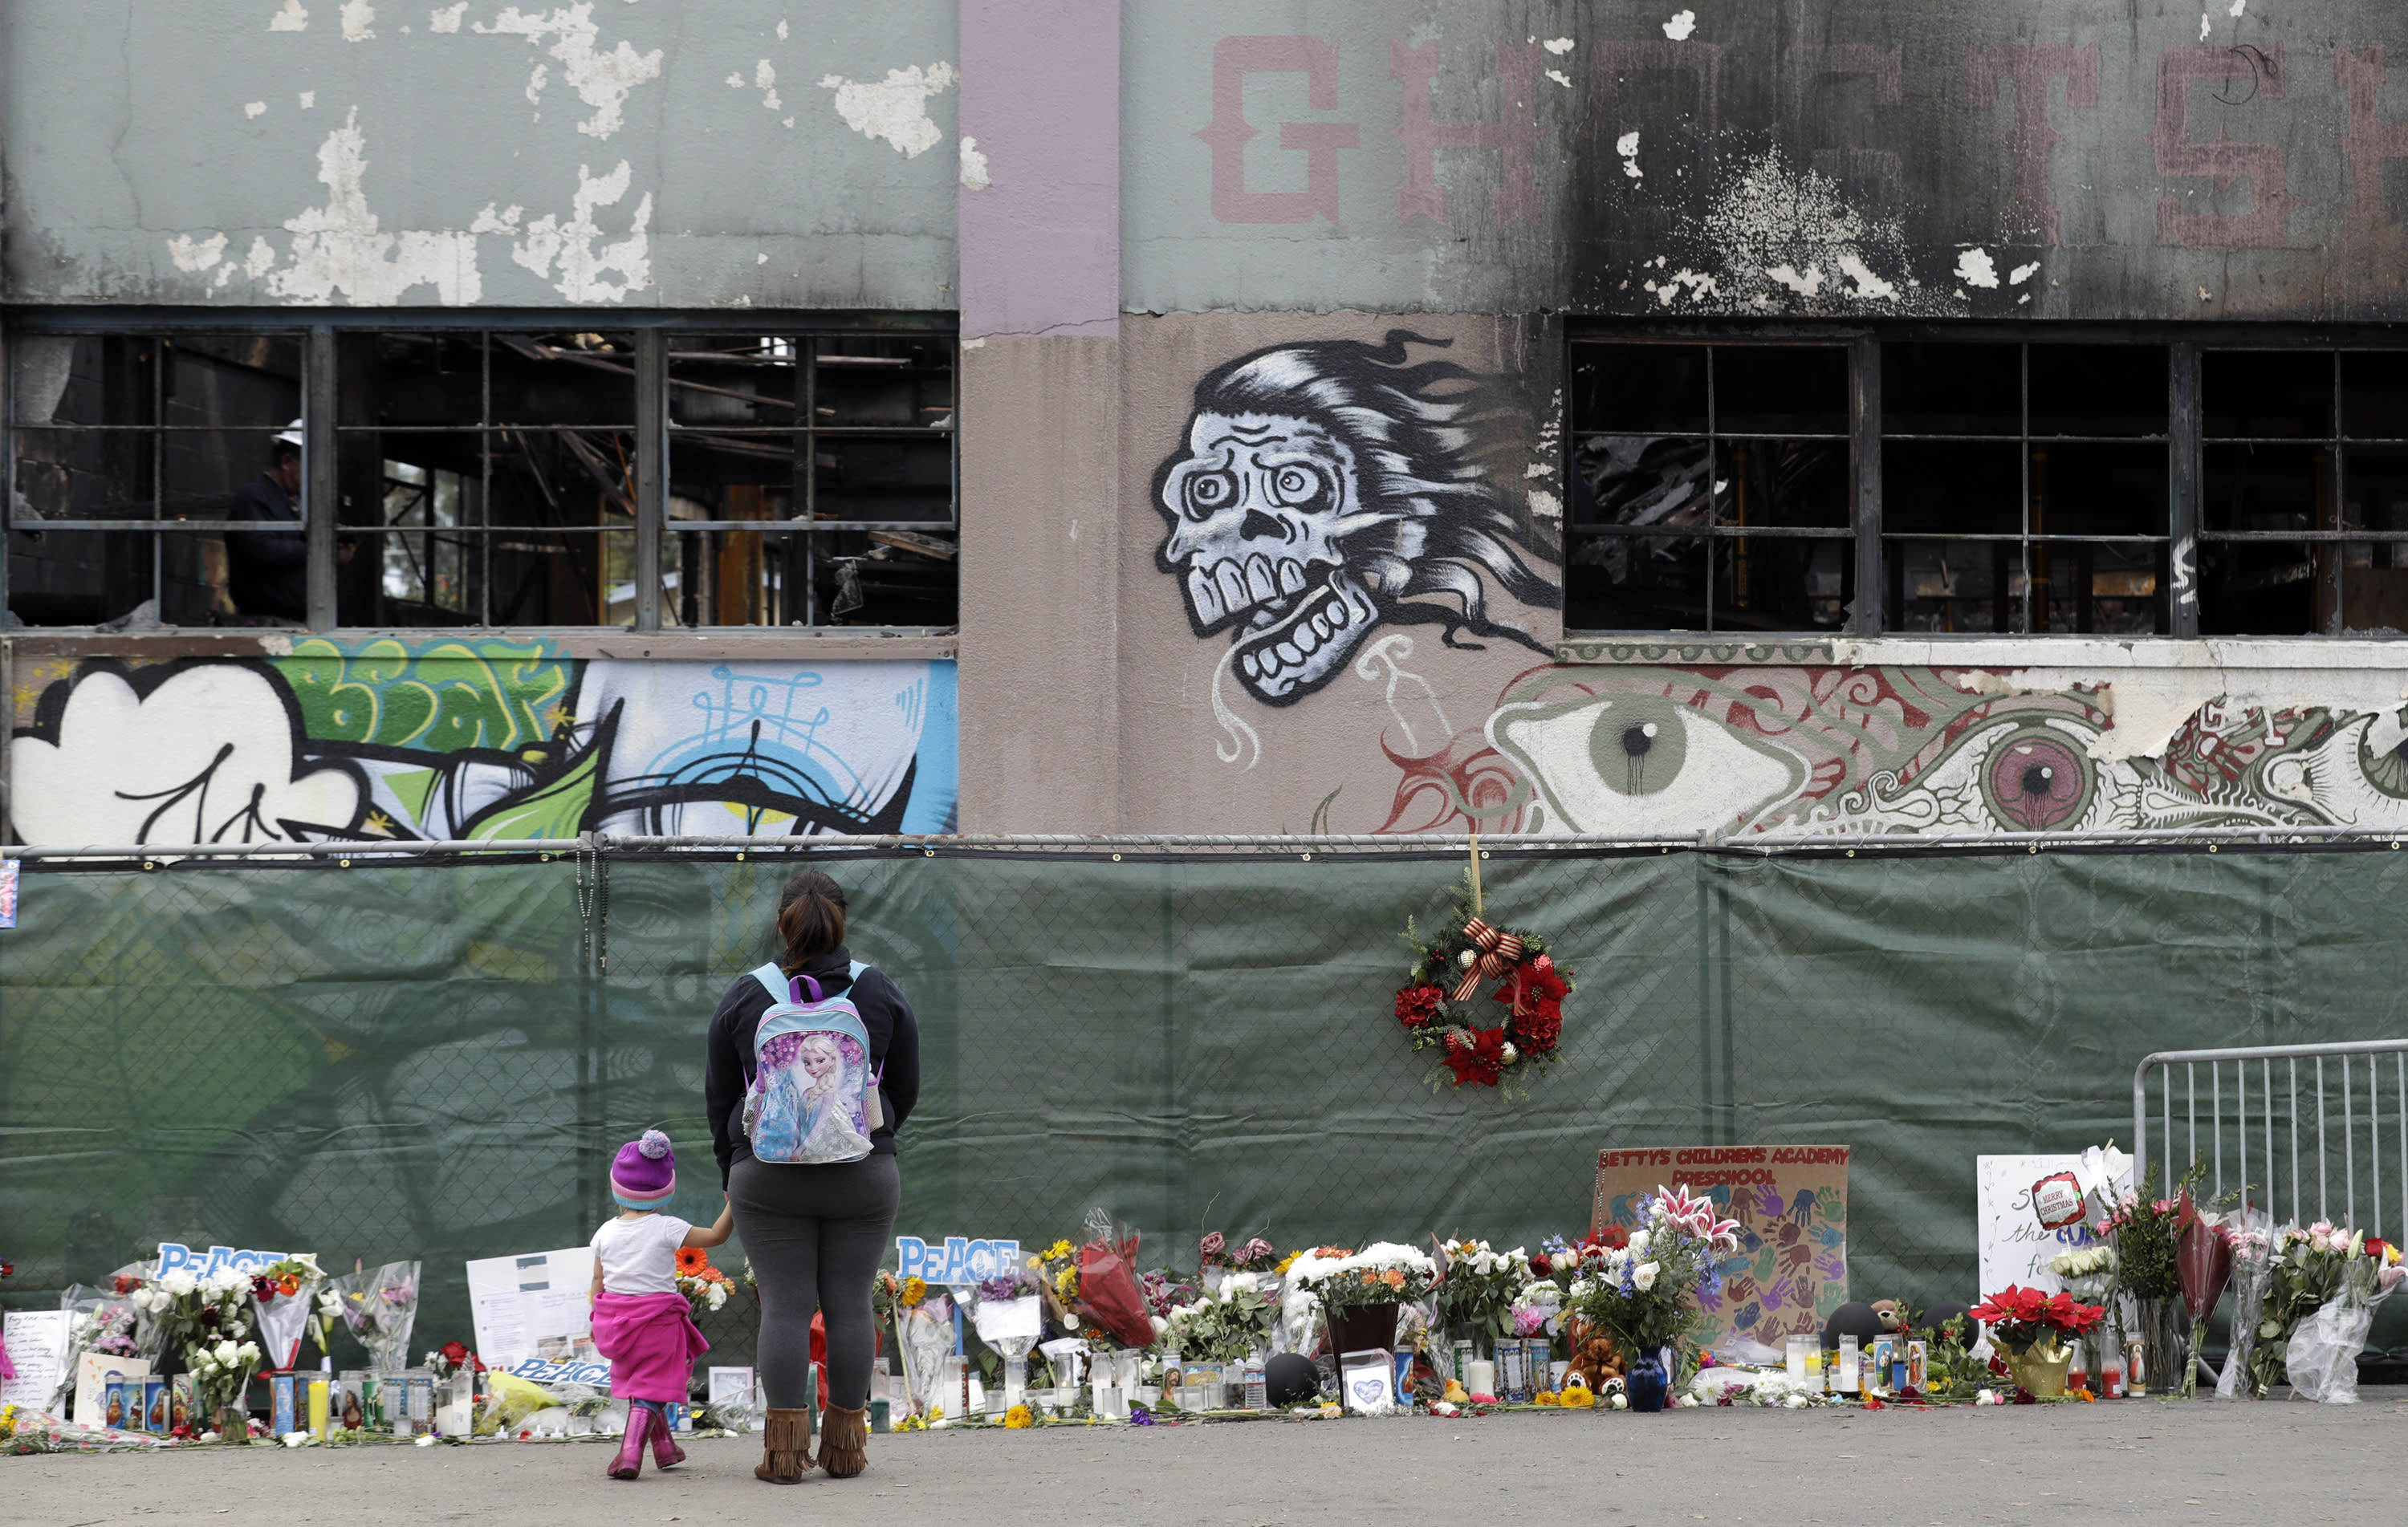 FILE - In this Dec. 13, 2016, file photo, flowers, pictures, signs and candles, are placed at the scene of a warehouse fire in Oakland, Calif. A judge will hear a motion asking the court to uphold a plea bargain that was reached with two men accused of being responsible for a warehouse fire that killed two dozen people at an unlicensed party. (AP Photo/Marcio Jose Sanchez, File)